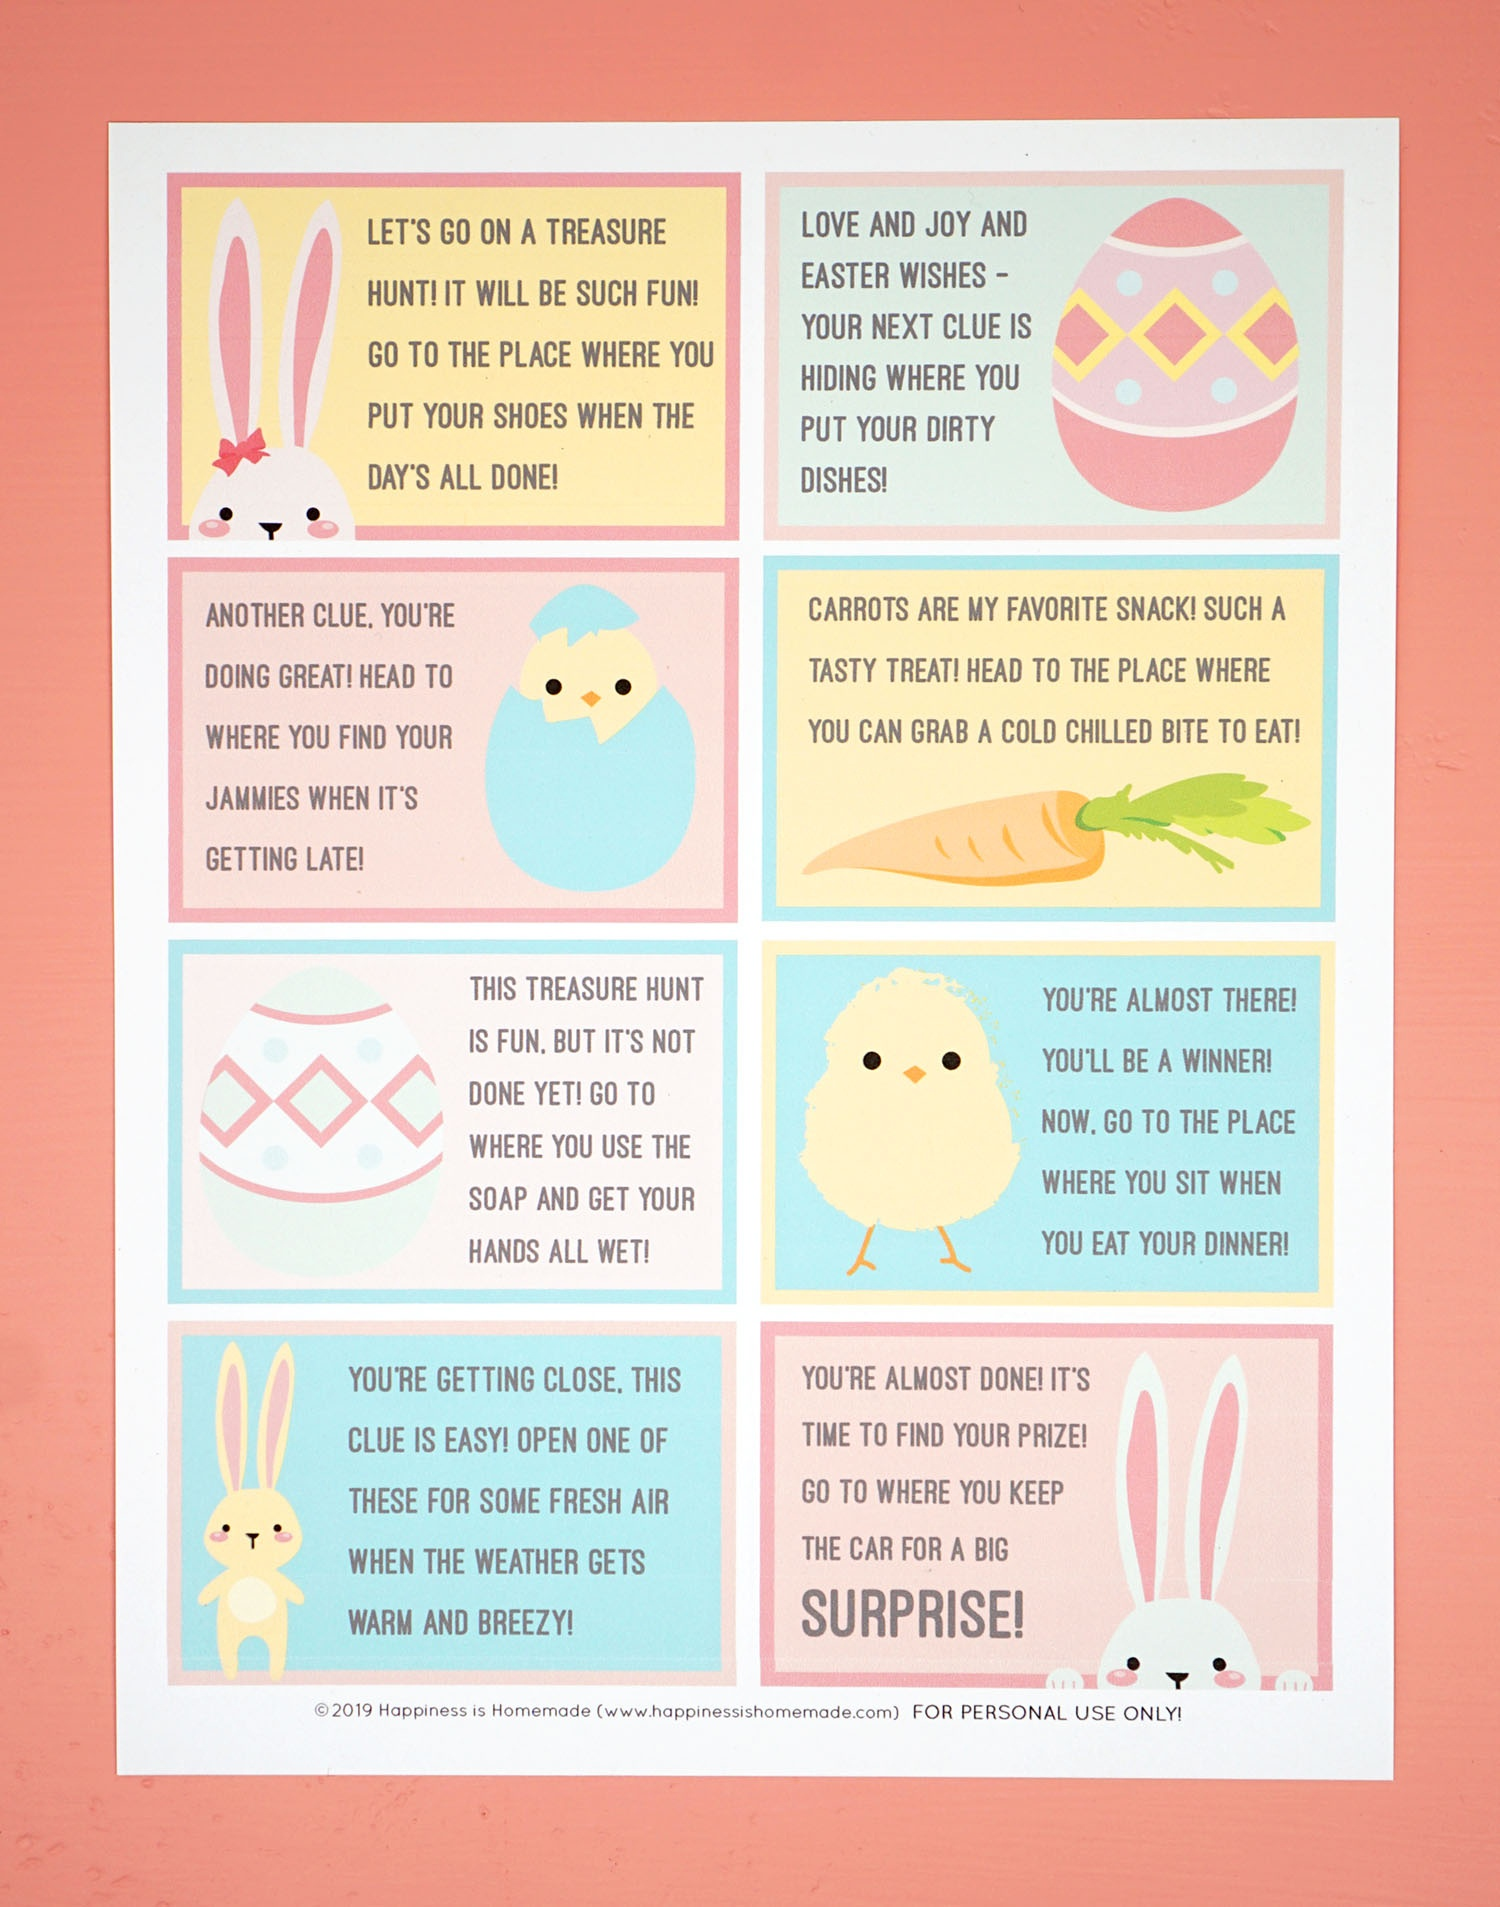 Easter Scavenger Hunt - Free Printable! - Happiness Is Homemade - Easter Scavenger Hunt Riddles Free Printable